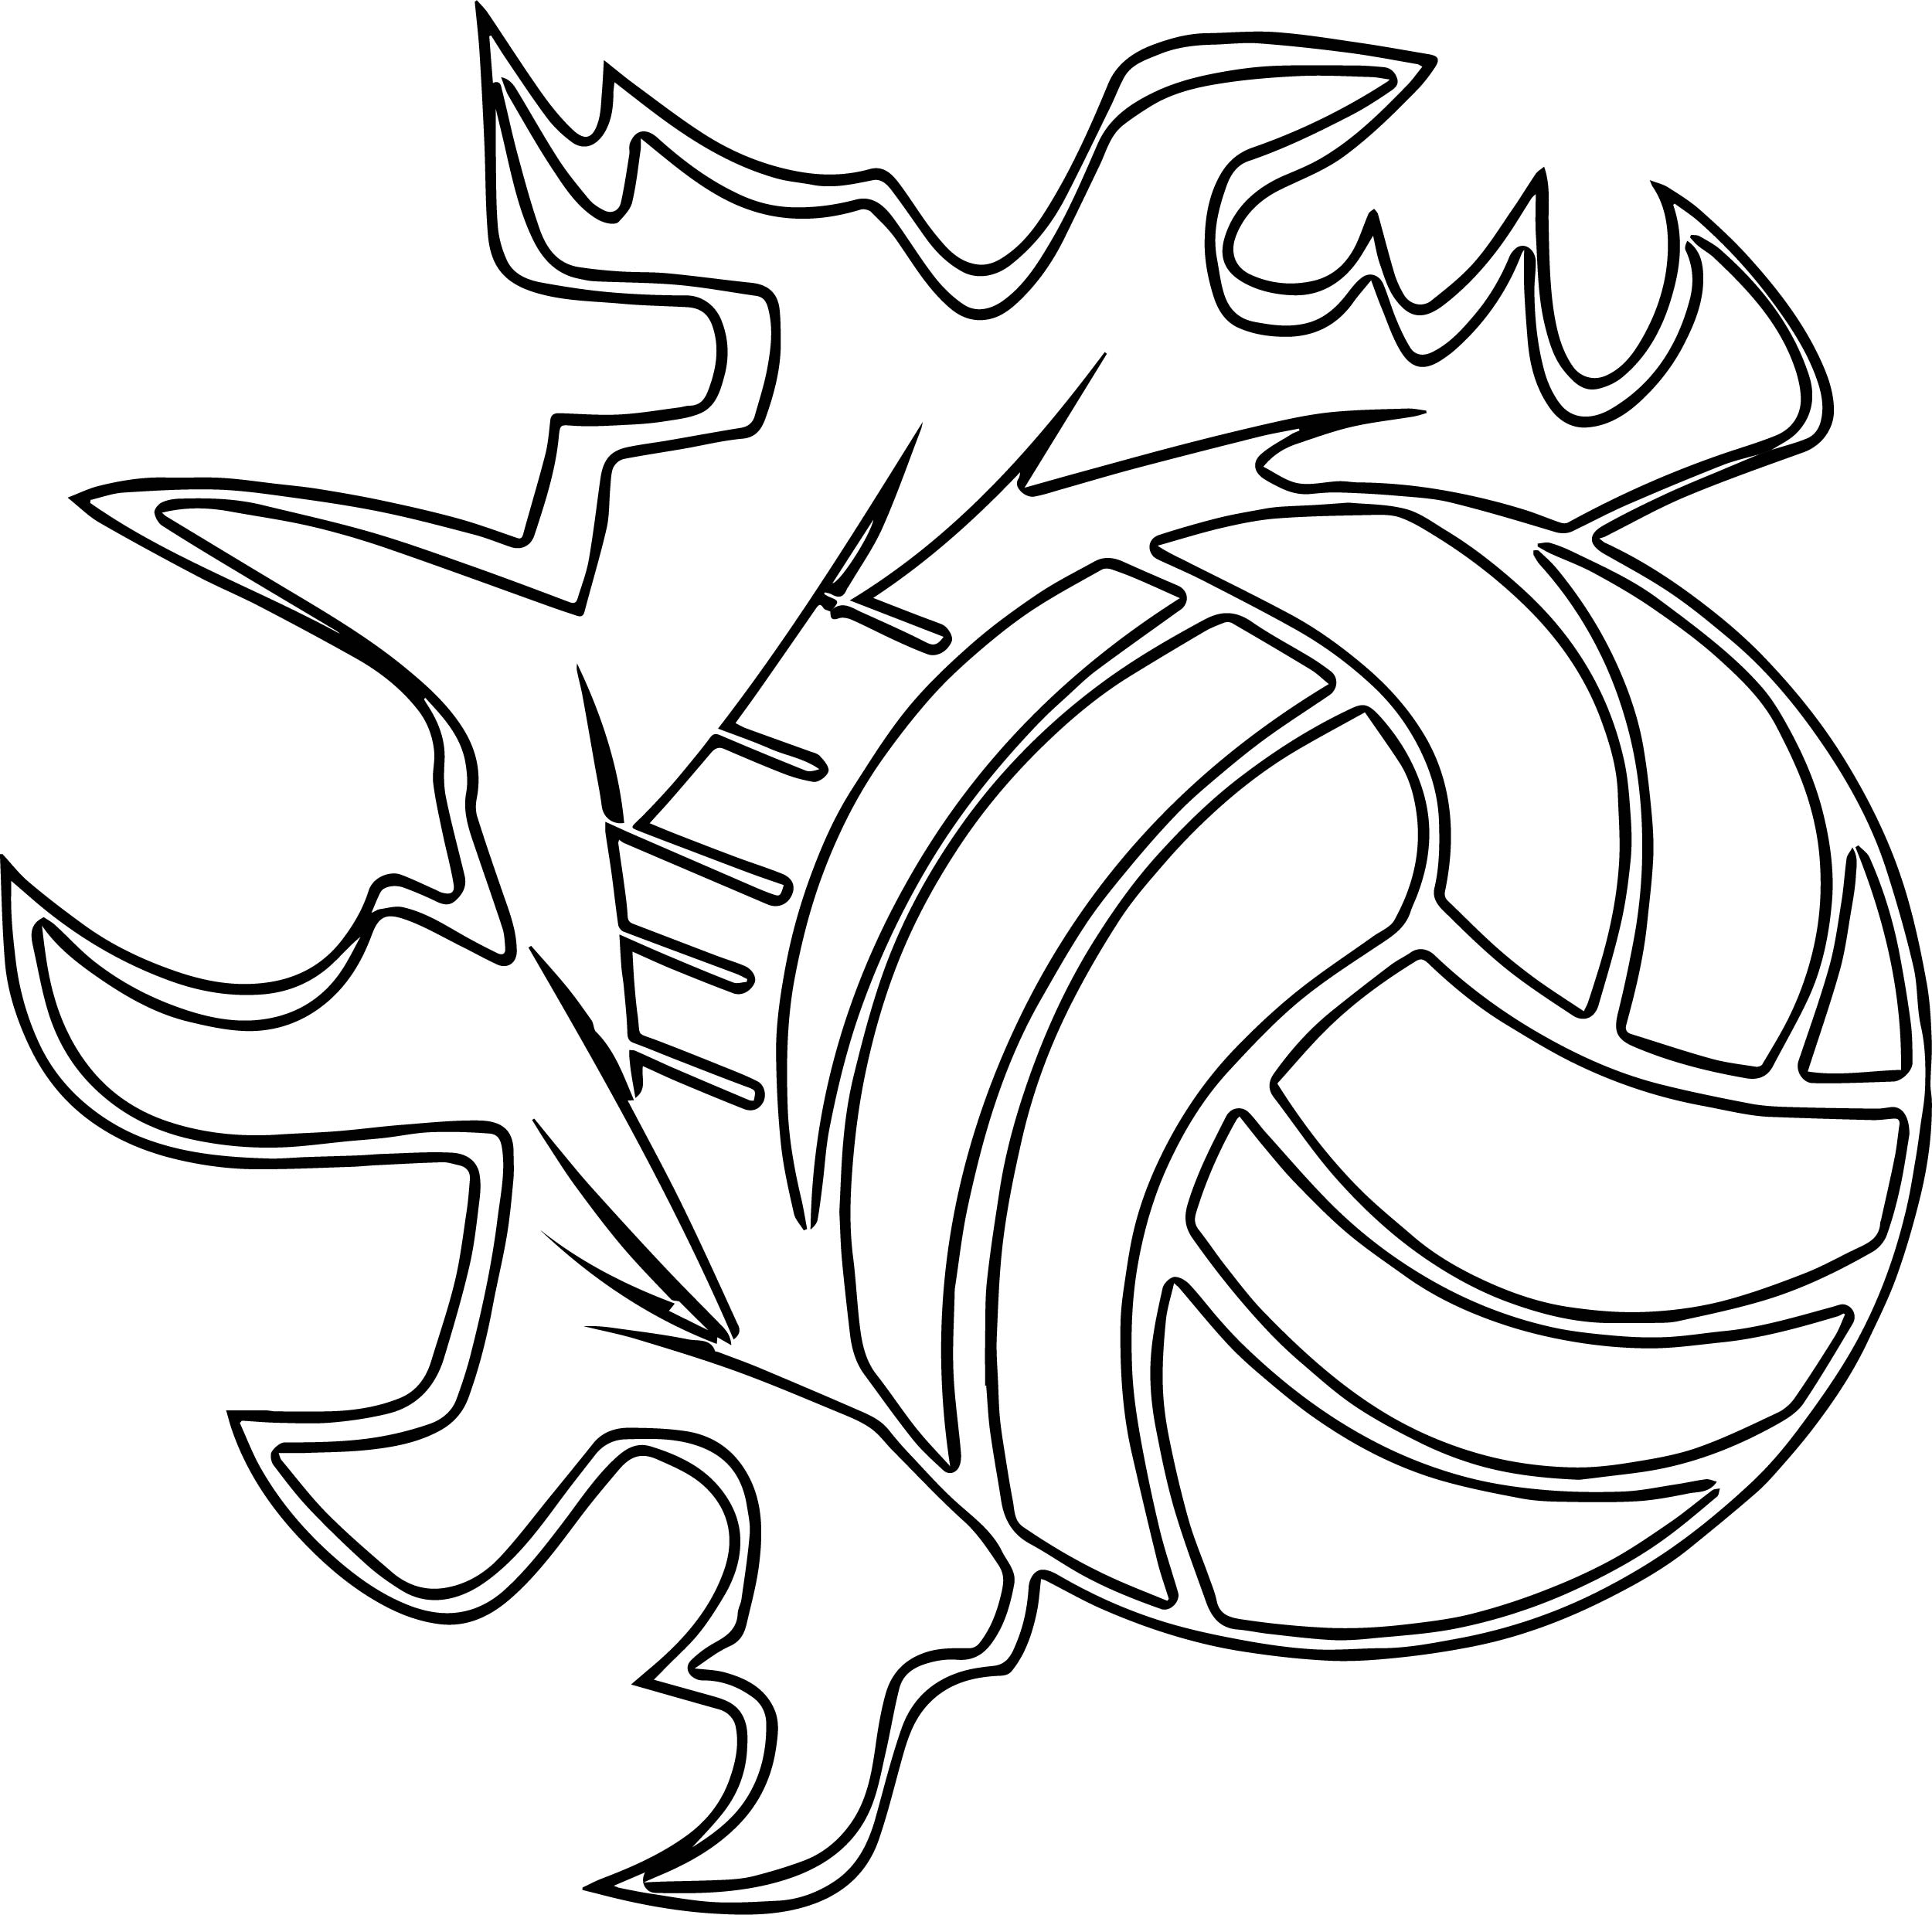 volleyballs players sports ball outline coloring page wecoloringpage